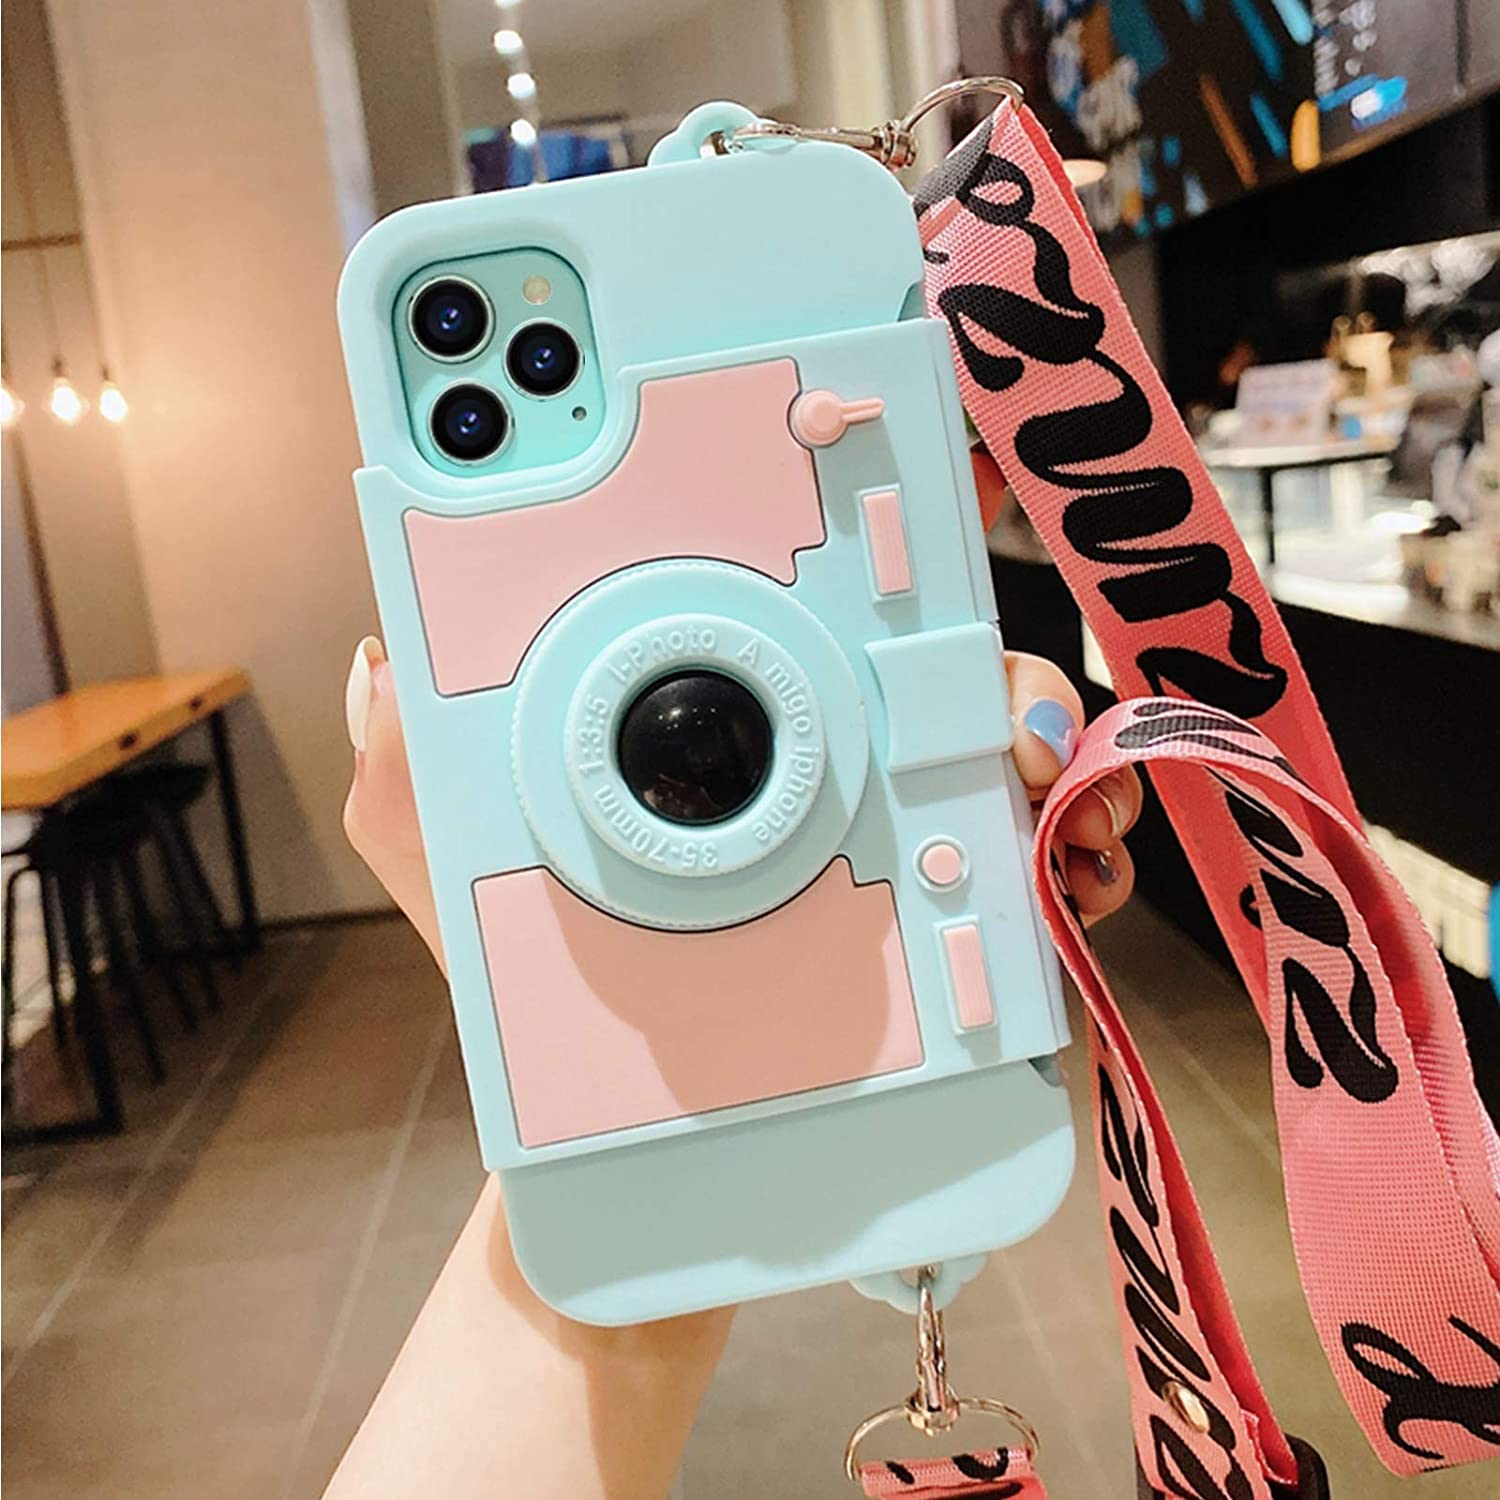 Compatible with iPhone 12 Pro Case iPhone 12 Cute 6.1 Card Wallet Holder for Women Girls Cool Camera Design Kickstand Girly Phone Case 3D Silicone Cover with Crossbody Strap Lanyard for Blue